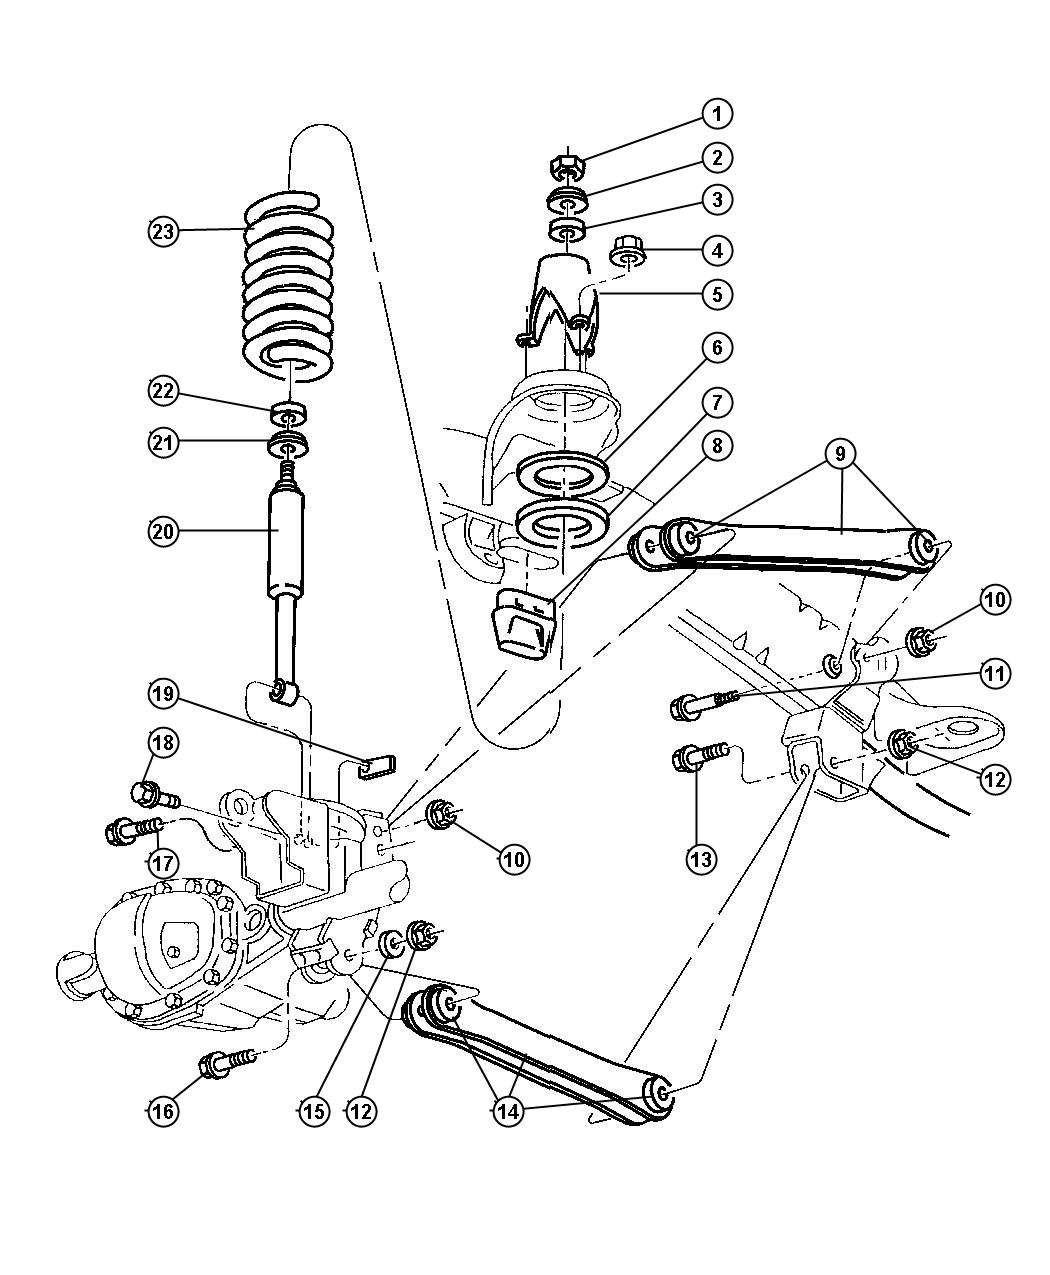 Dodge Neon Rear Suspension Diagram